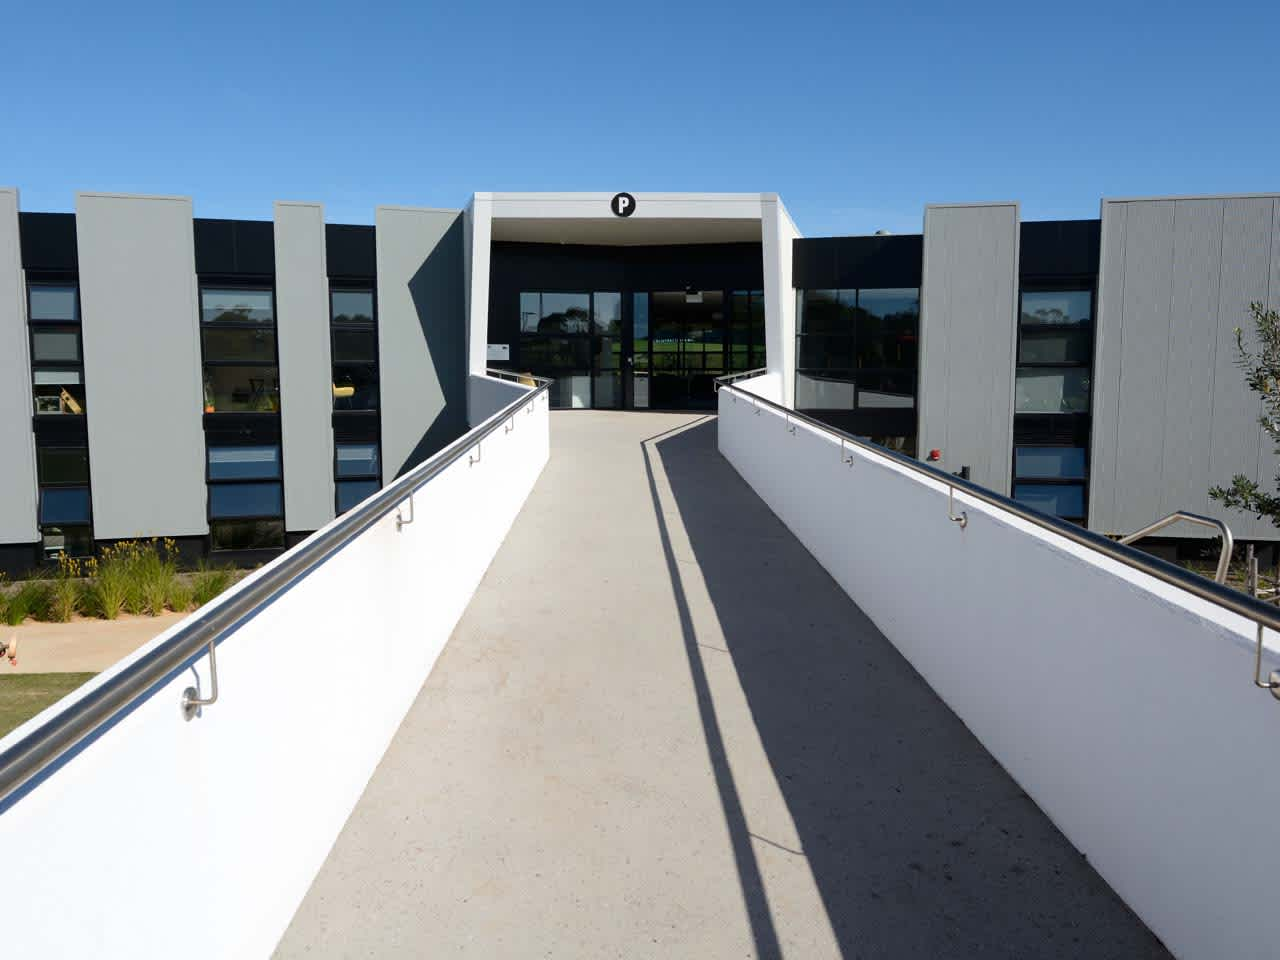 Entrance to building F at Warrnambool campus